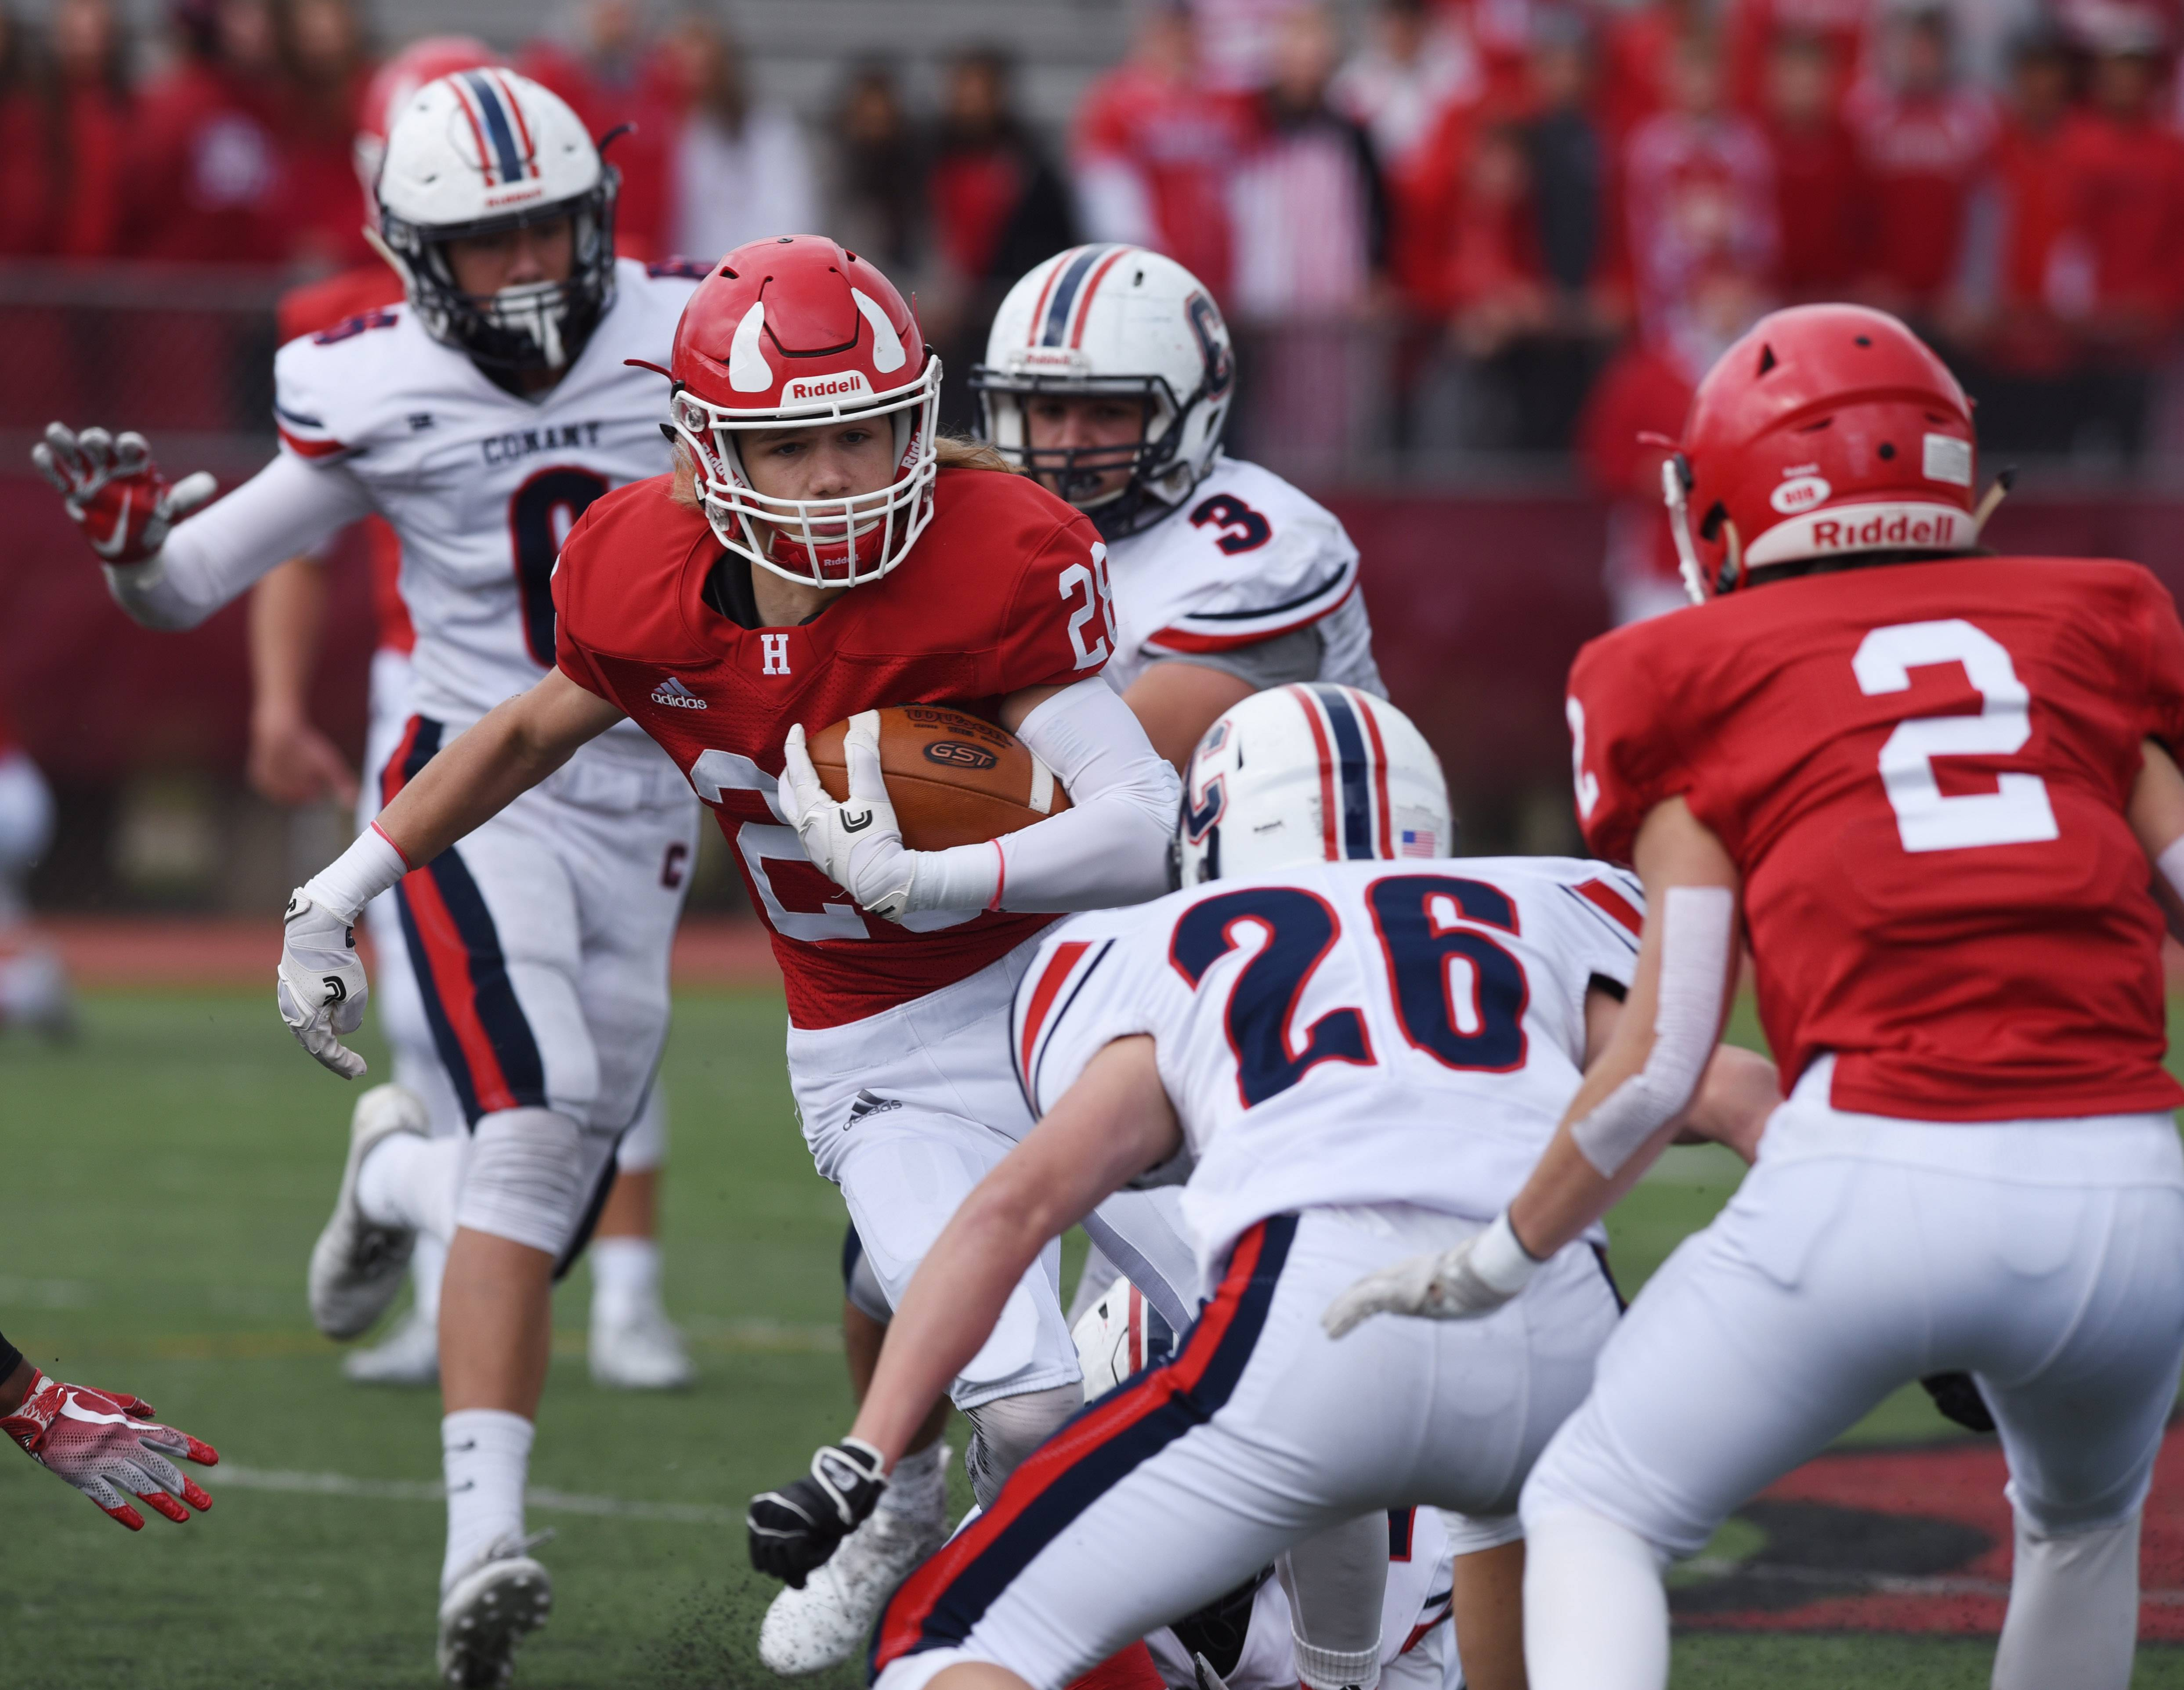 Hinsdale Central ball carrier Mark Skokna runs toward Conant's Zach Valas (26) during Saturday's Class 8A playoff game in Hinsdale.